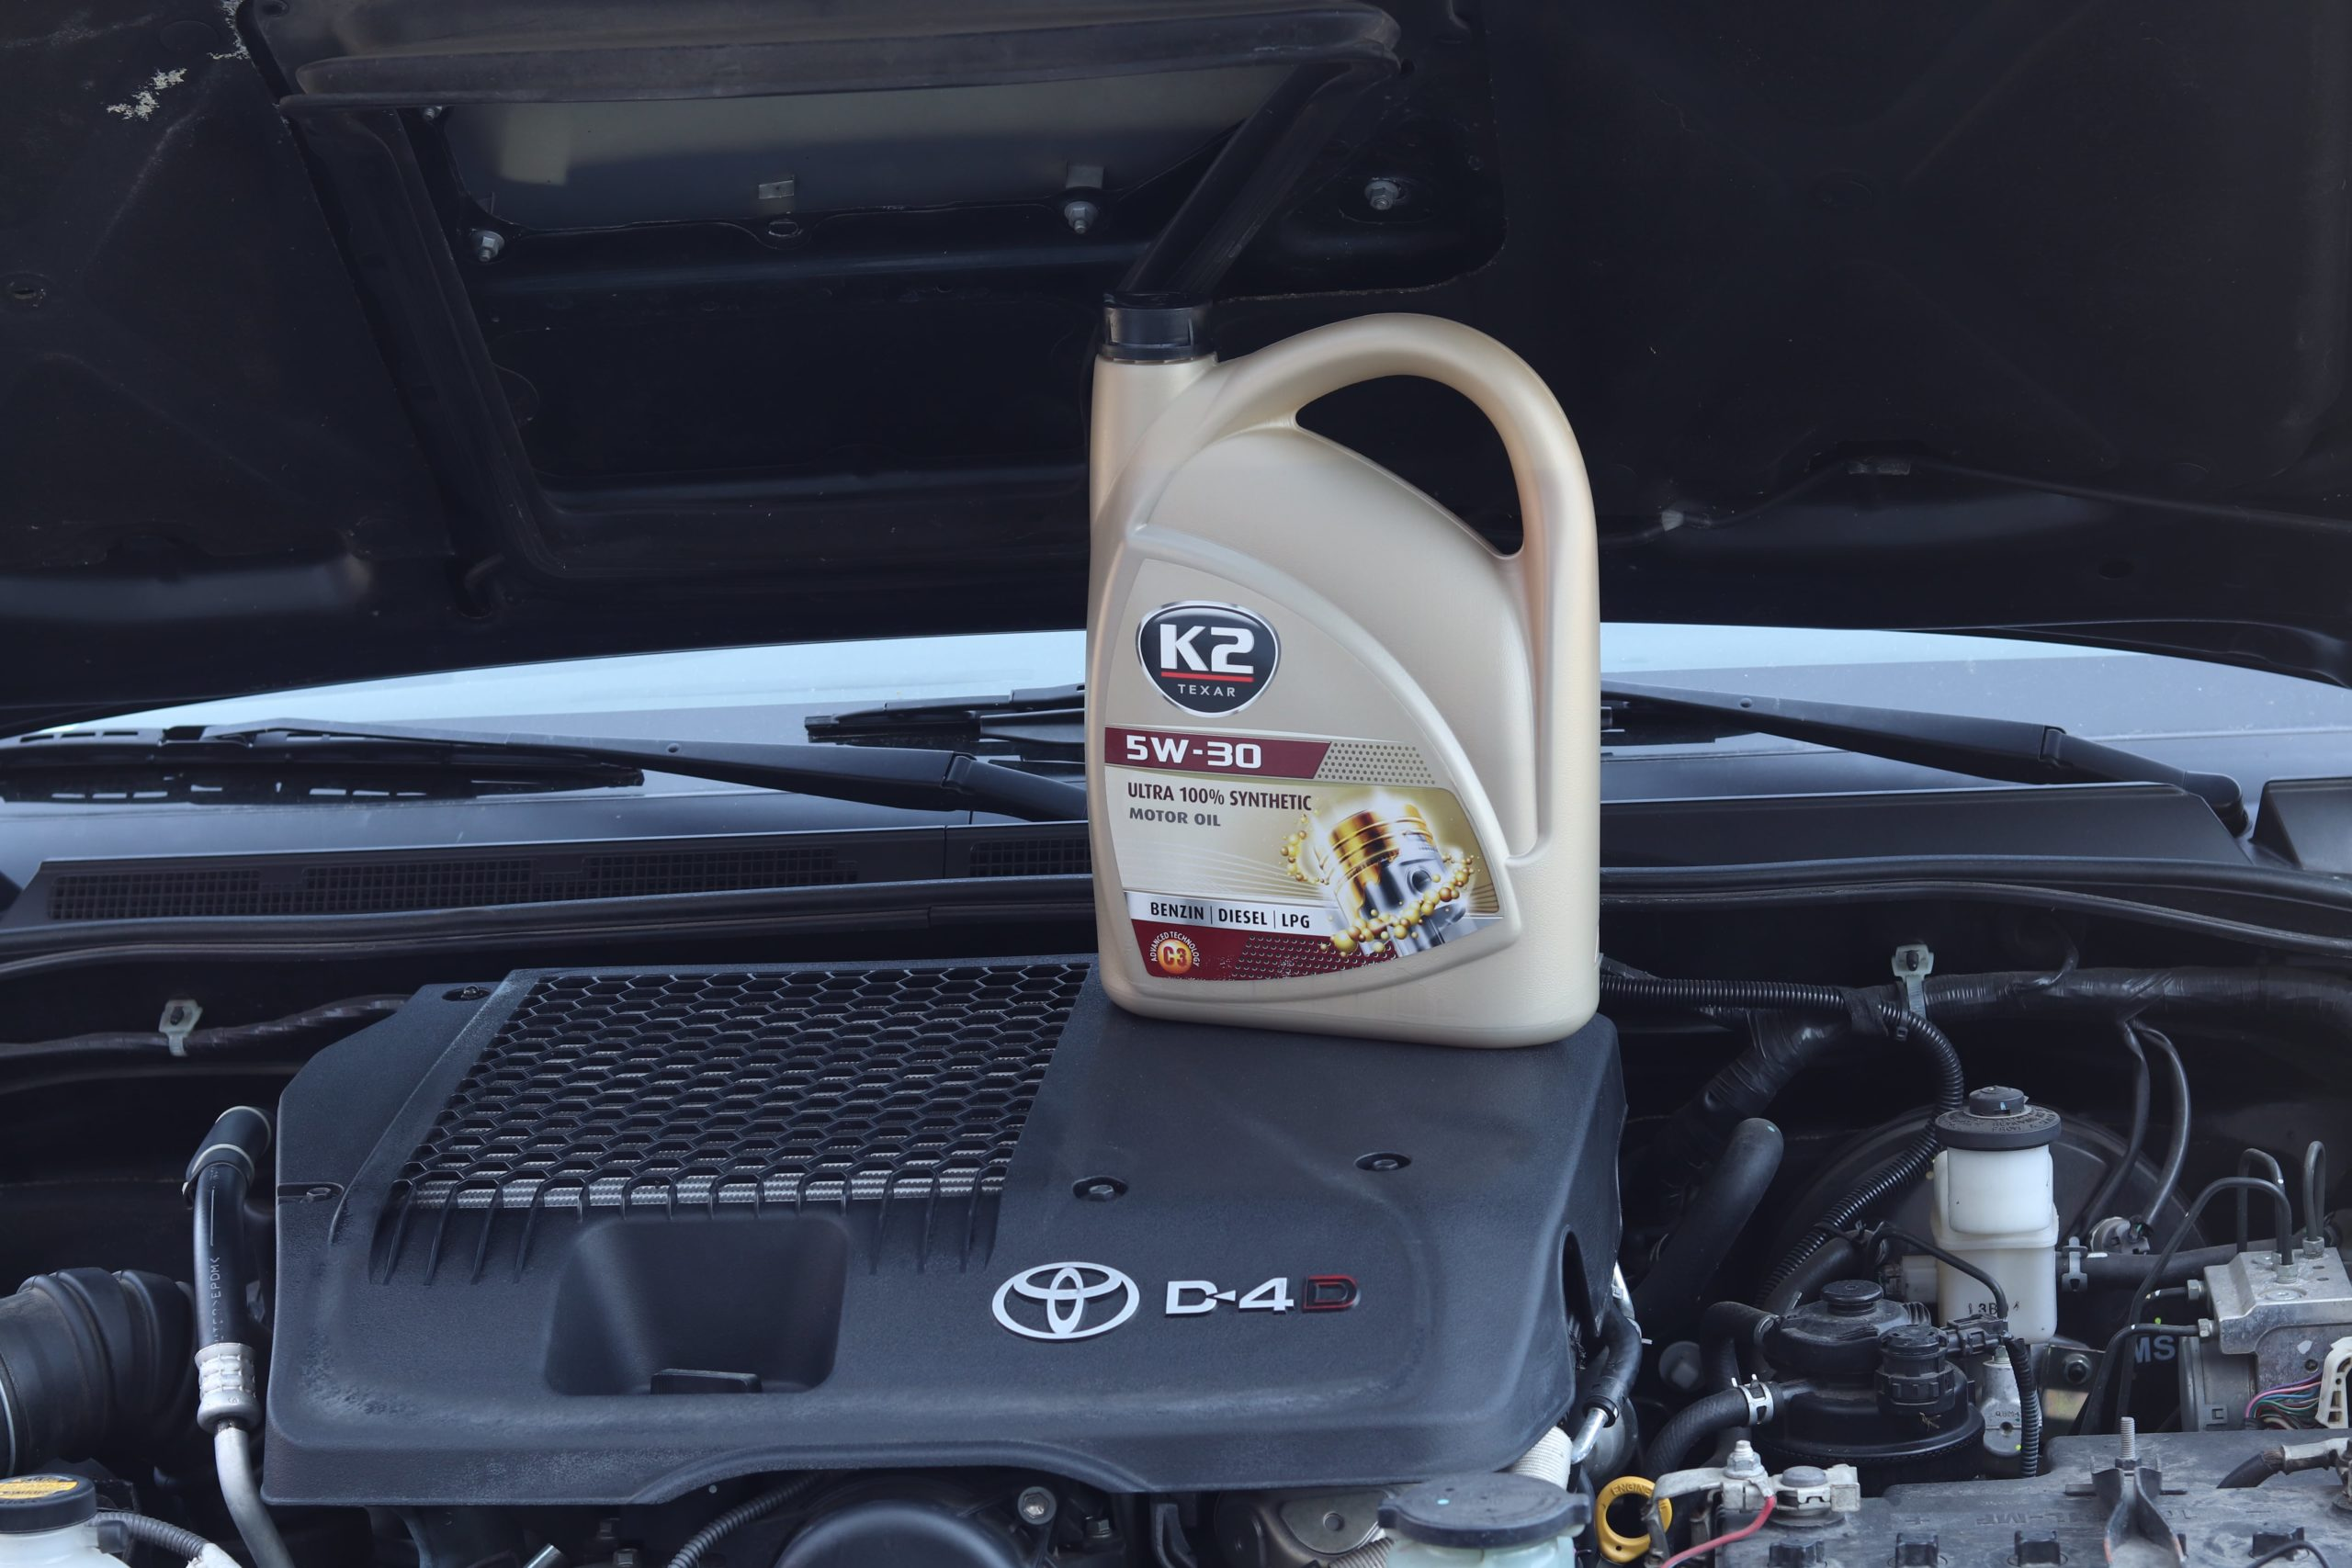 Classification of engine oils – How to read the markings?